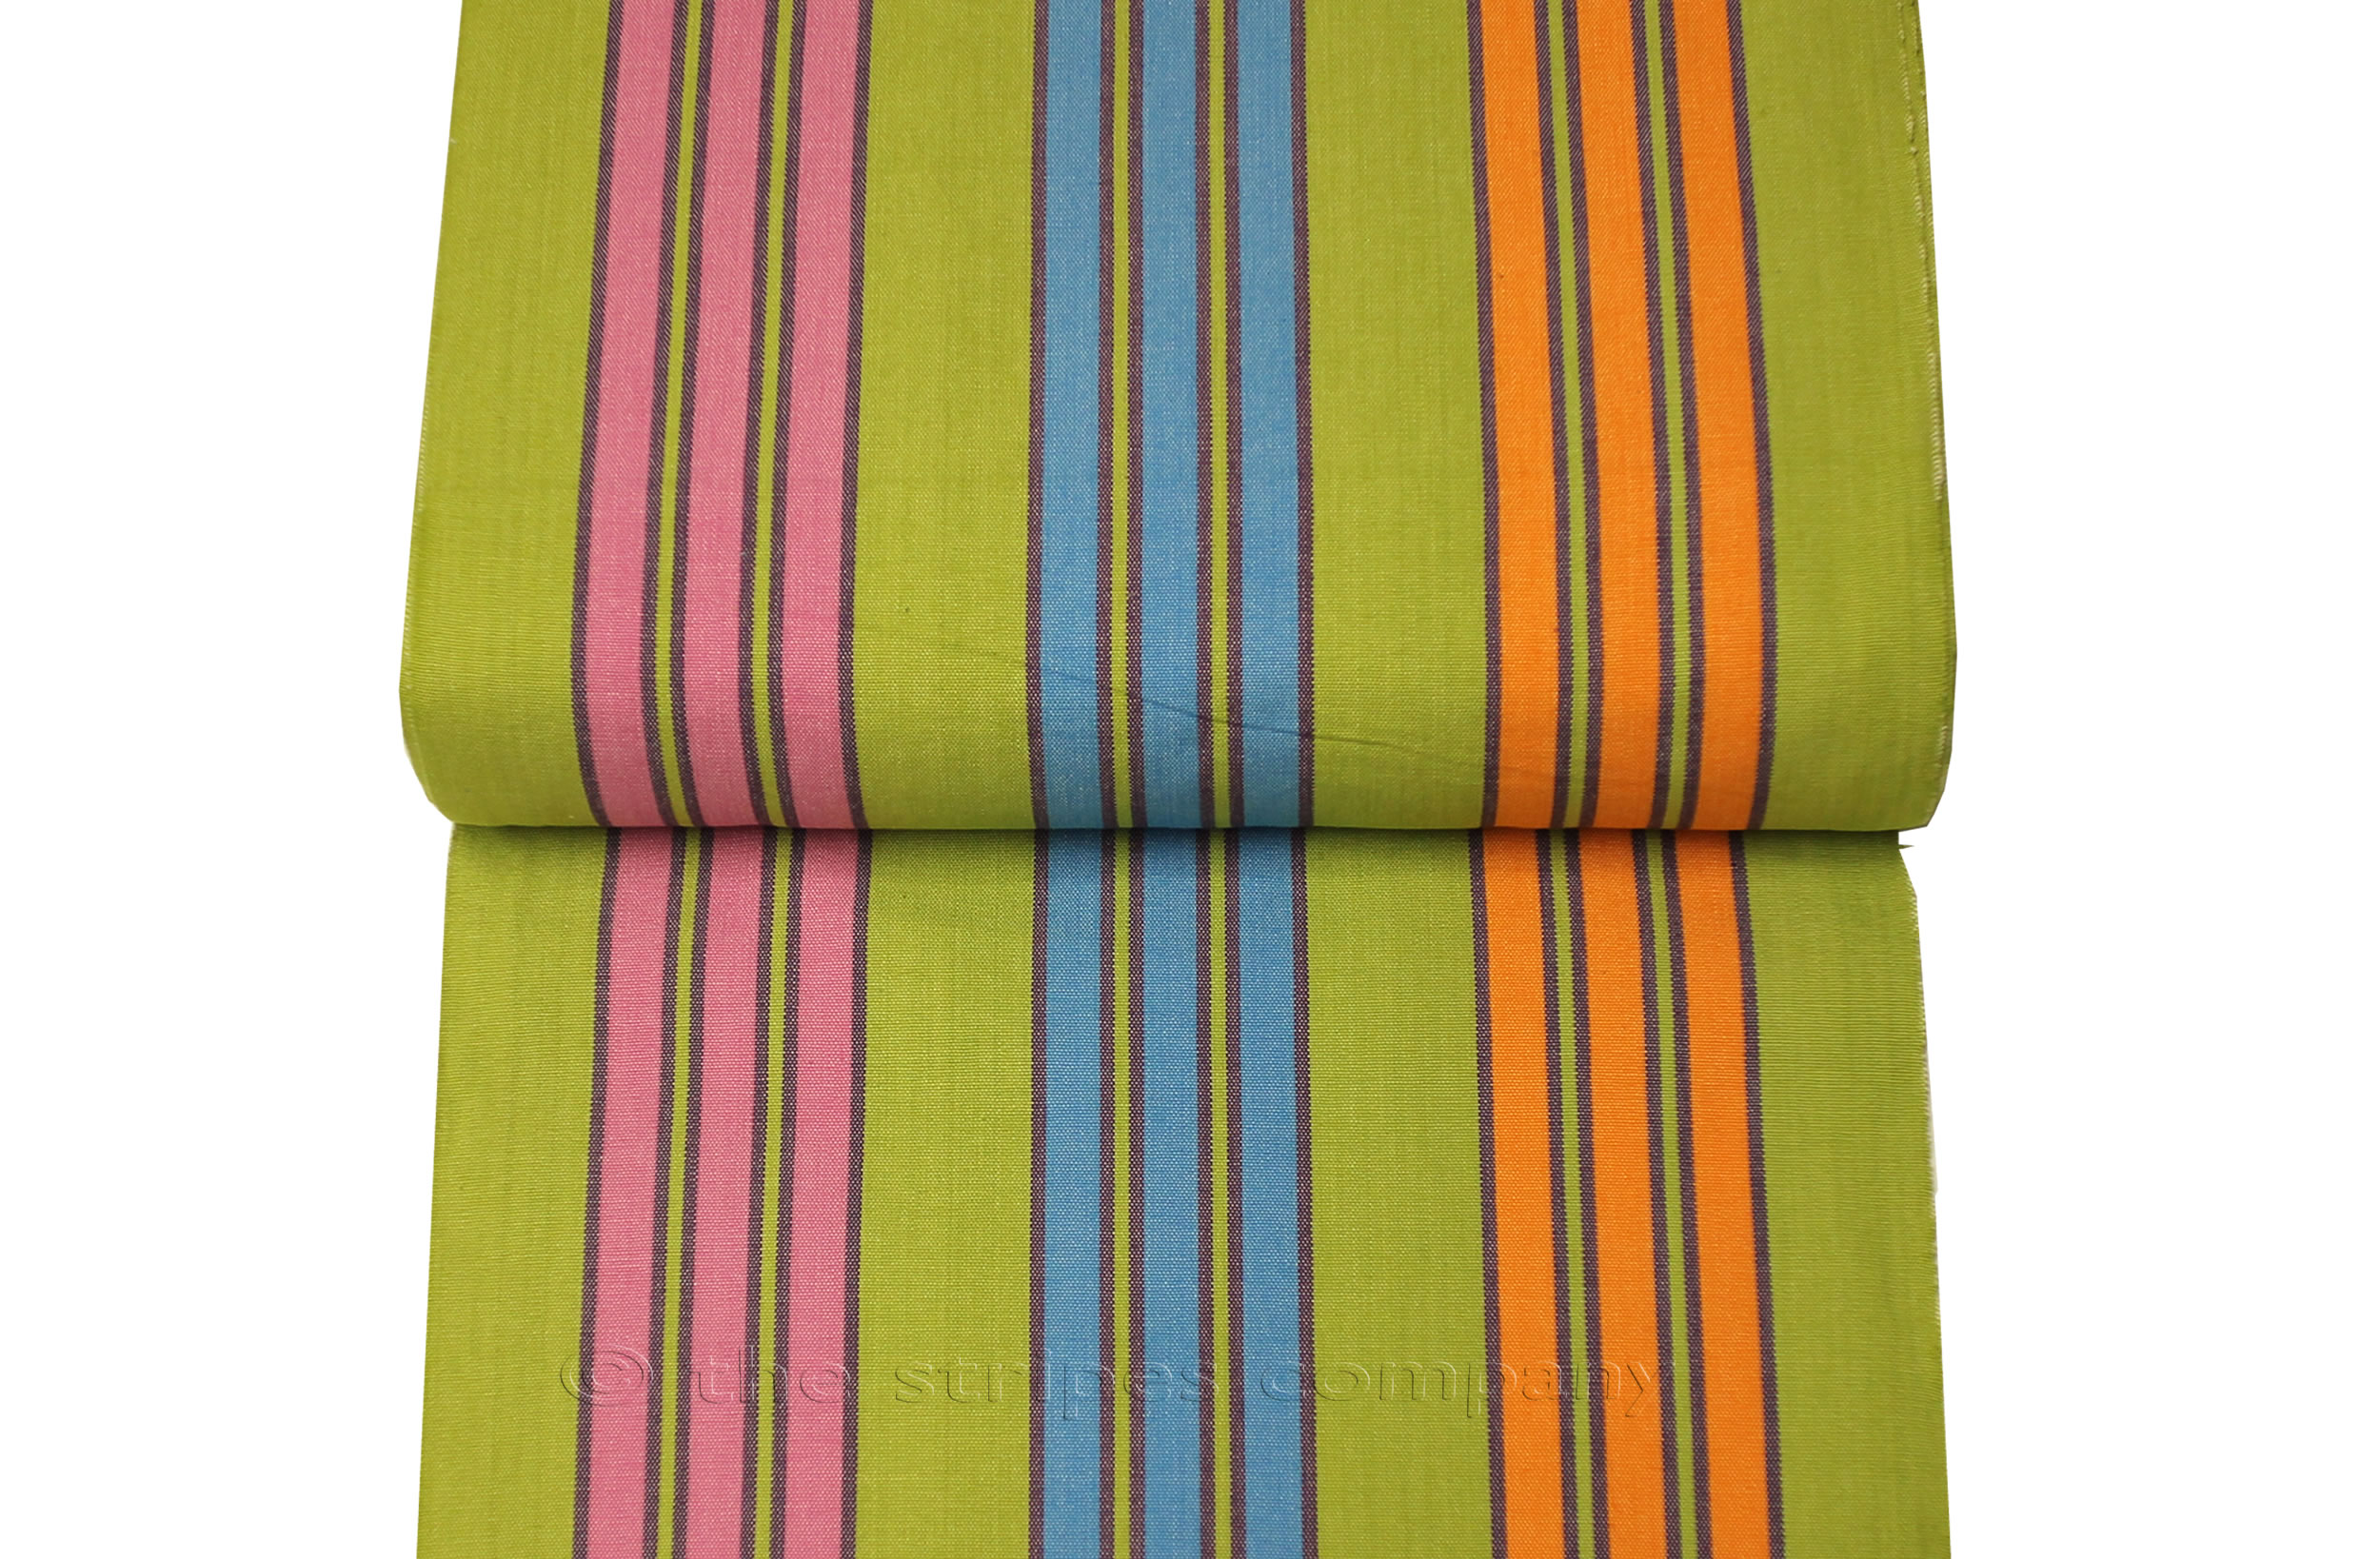 Replacement Directors Chair Covers Green, Turquoise, Pink Stripes